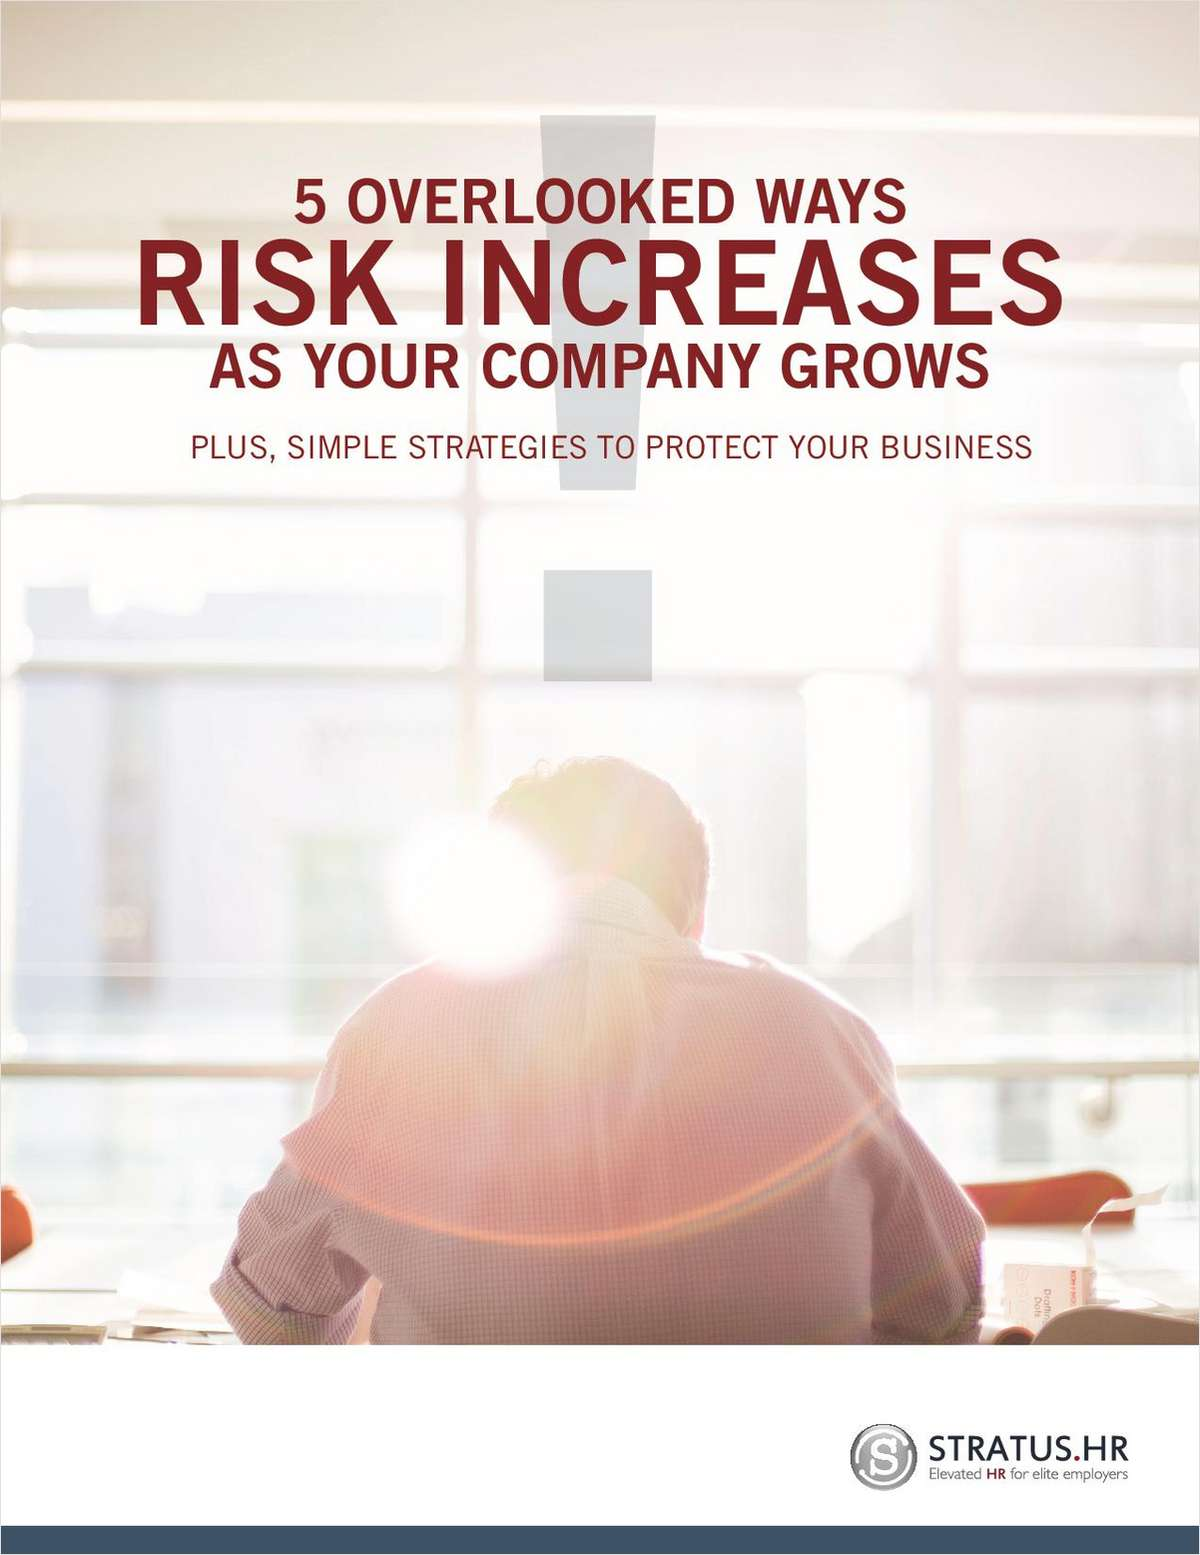 Warning: New Risks for Small Business!